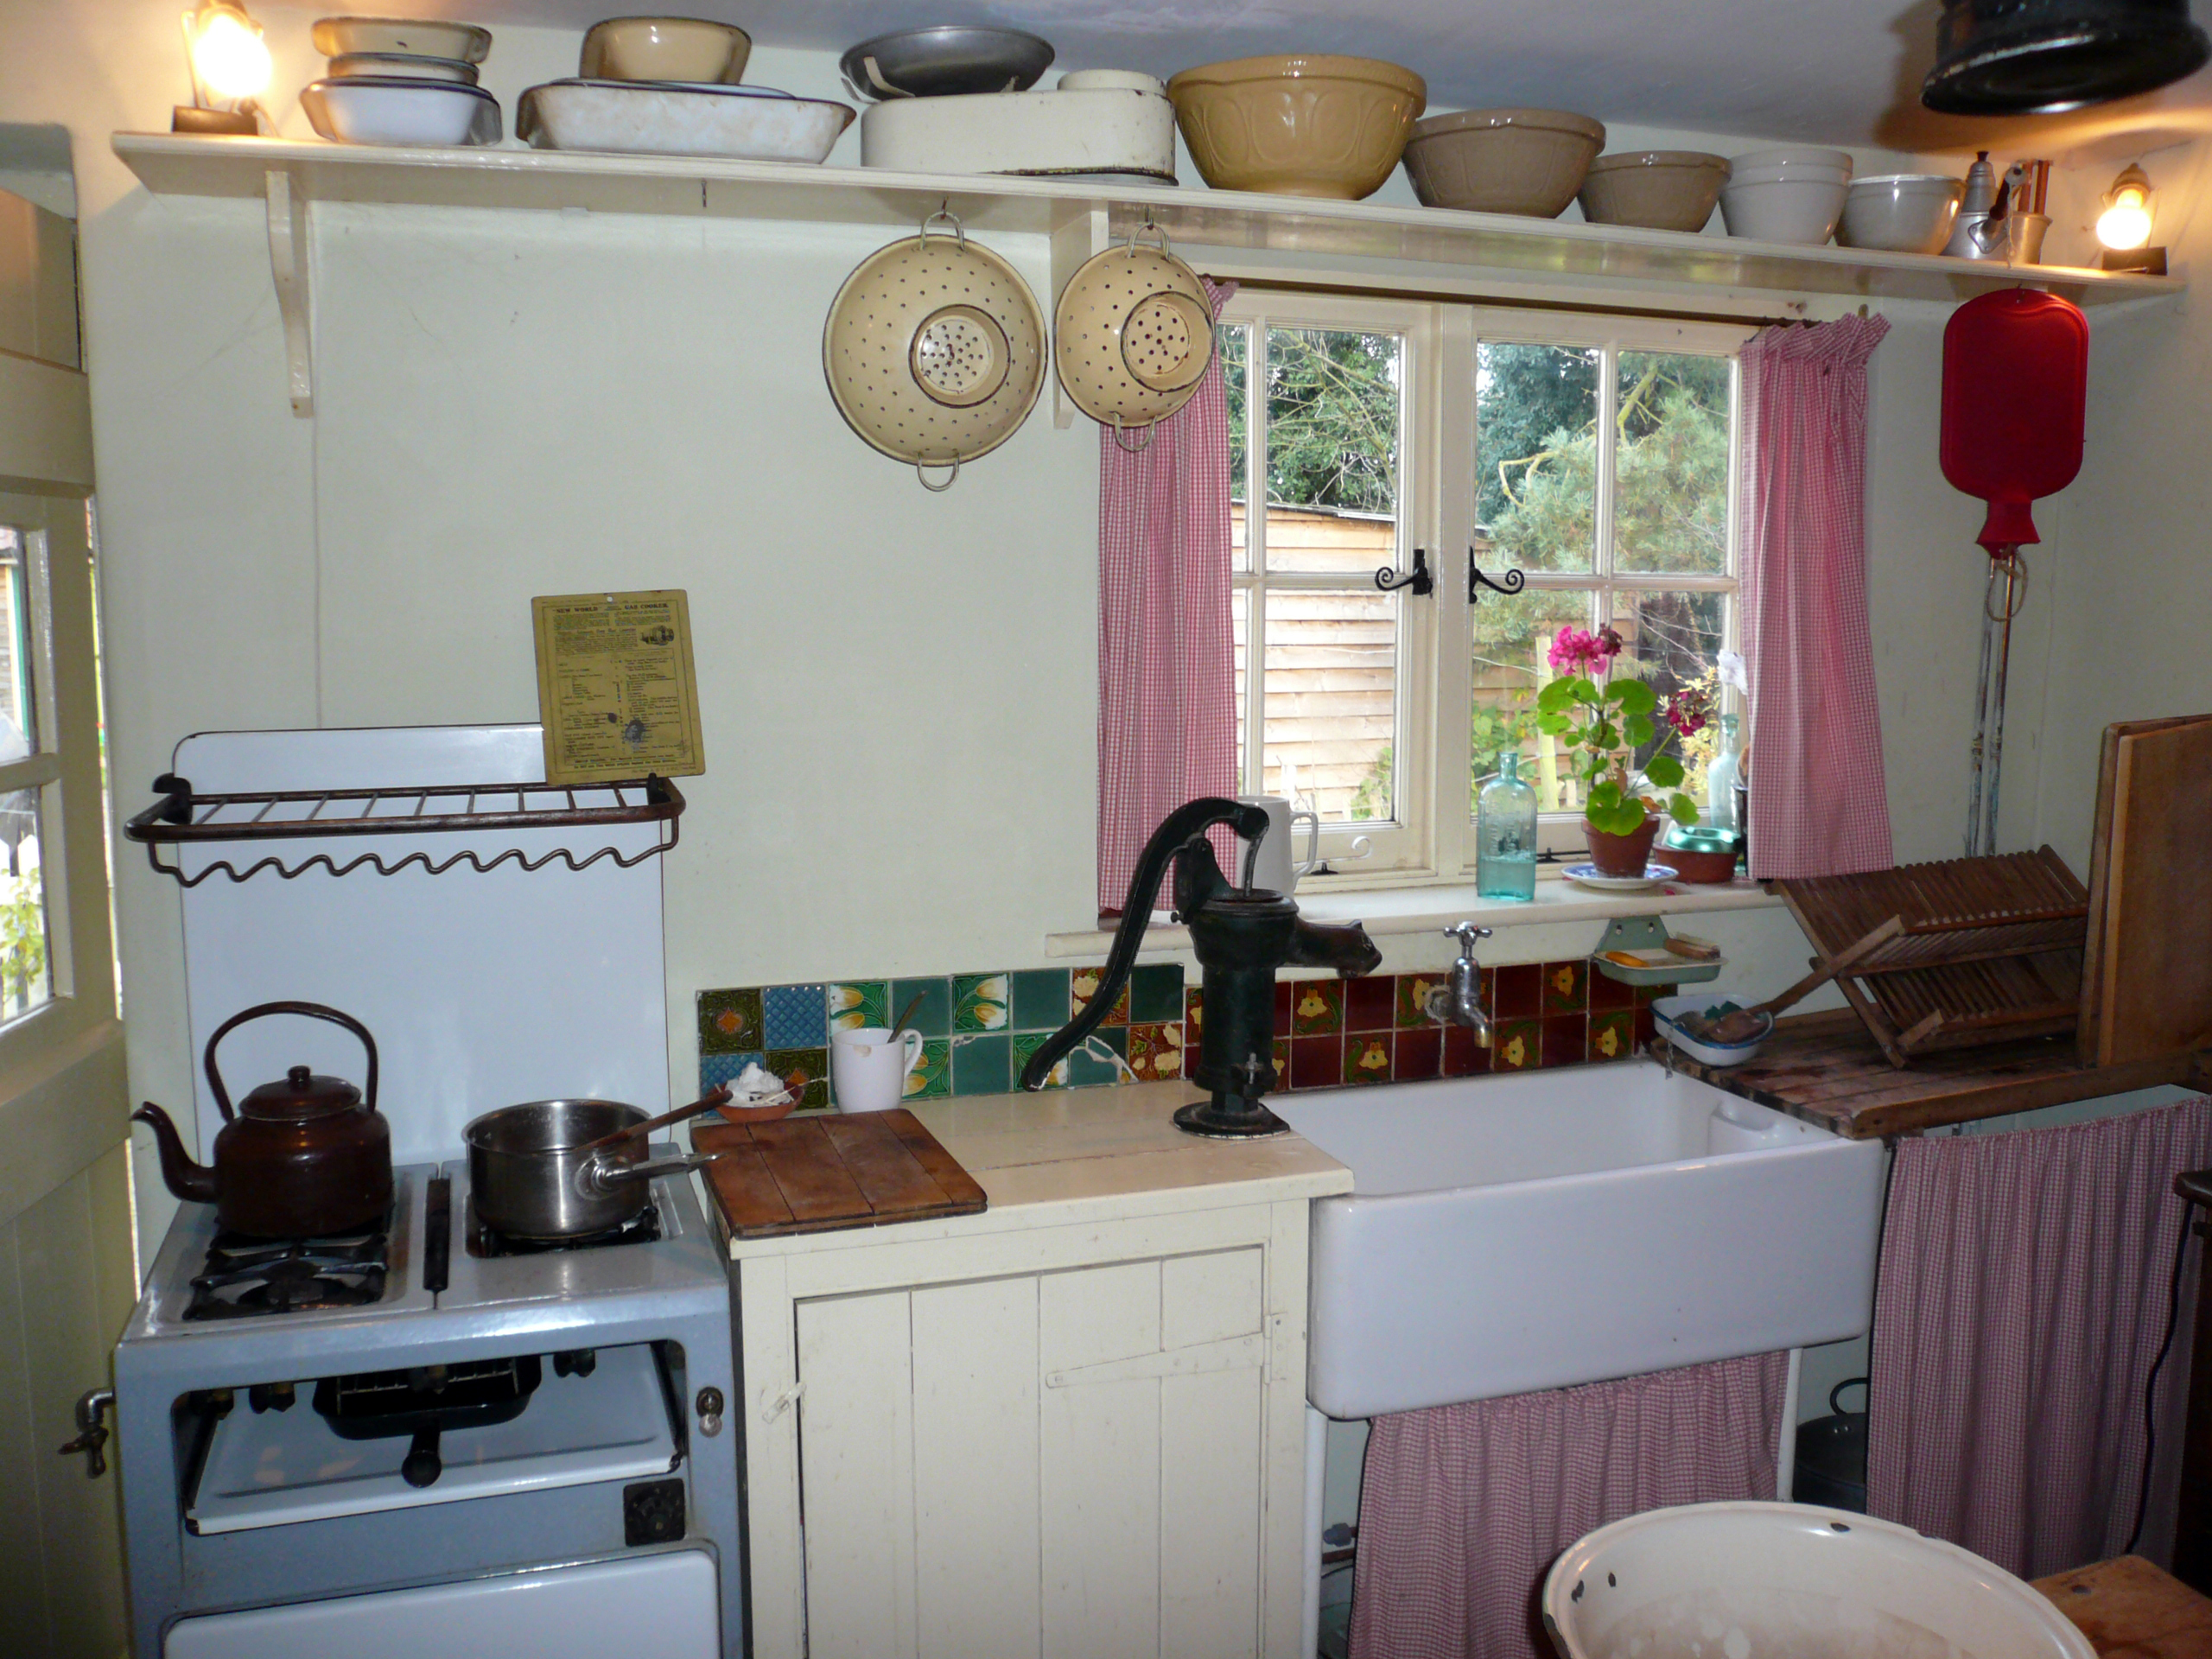 1940s Kitchen E2bn Gallery